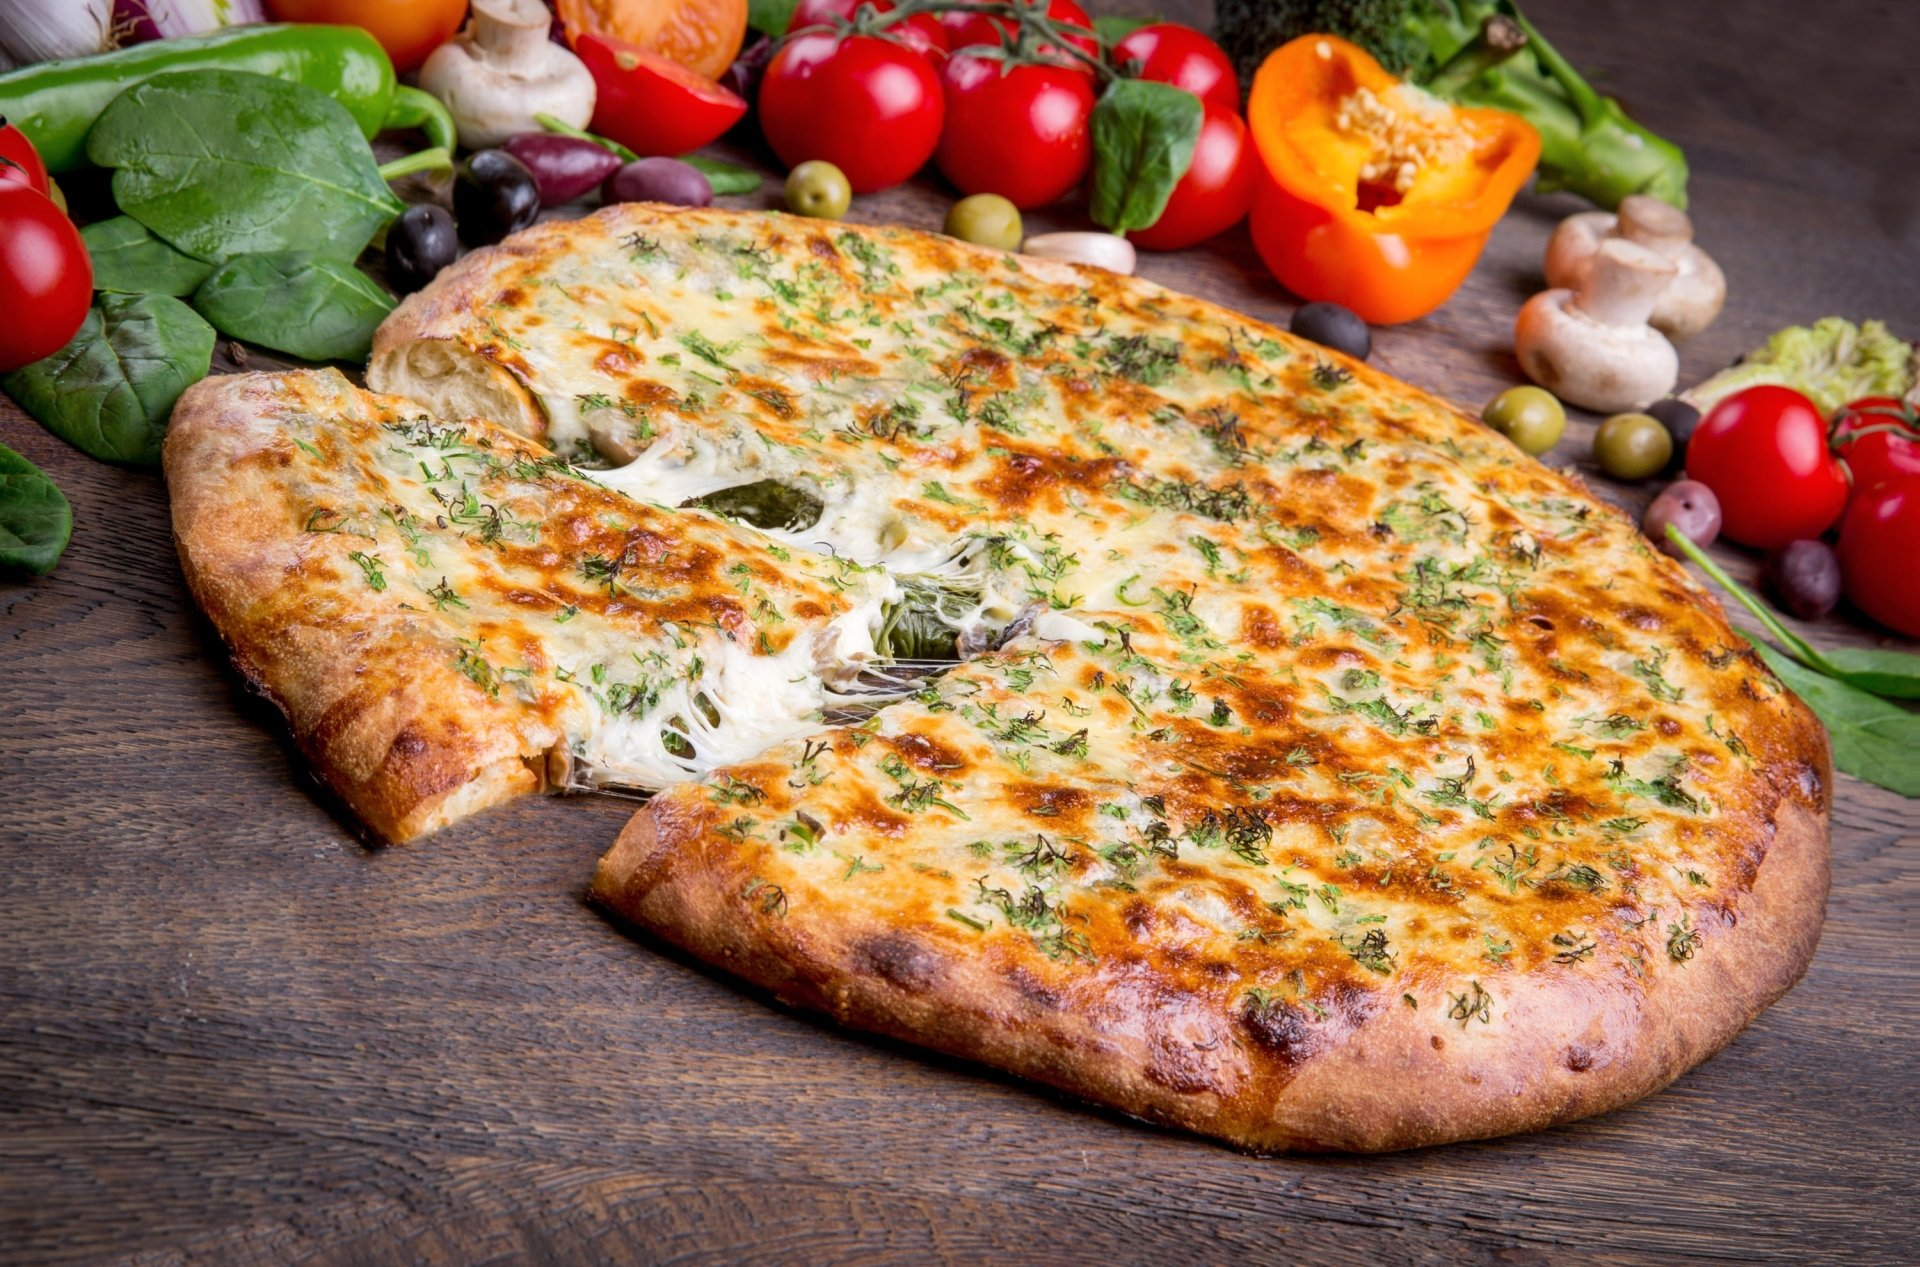 pizza photo download